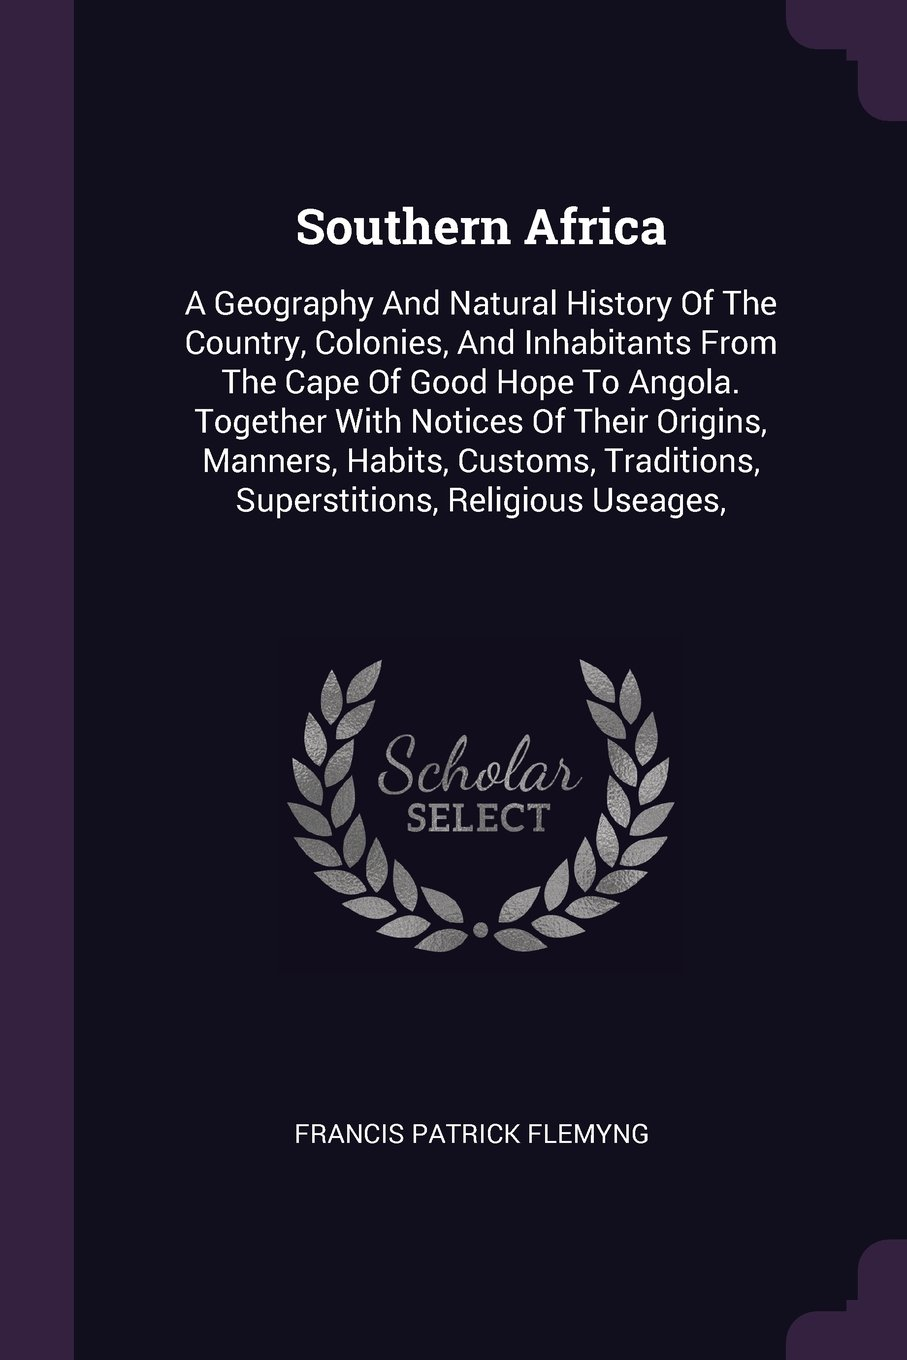 Southern Africa: A Geography And Natural History Of The Country, Colonies, And Inhabitants From The Cape Of Good Hope To Angola. Together With Notices ... Traditions, Superstitions, Religious Useages, pdf